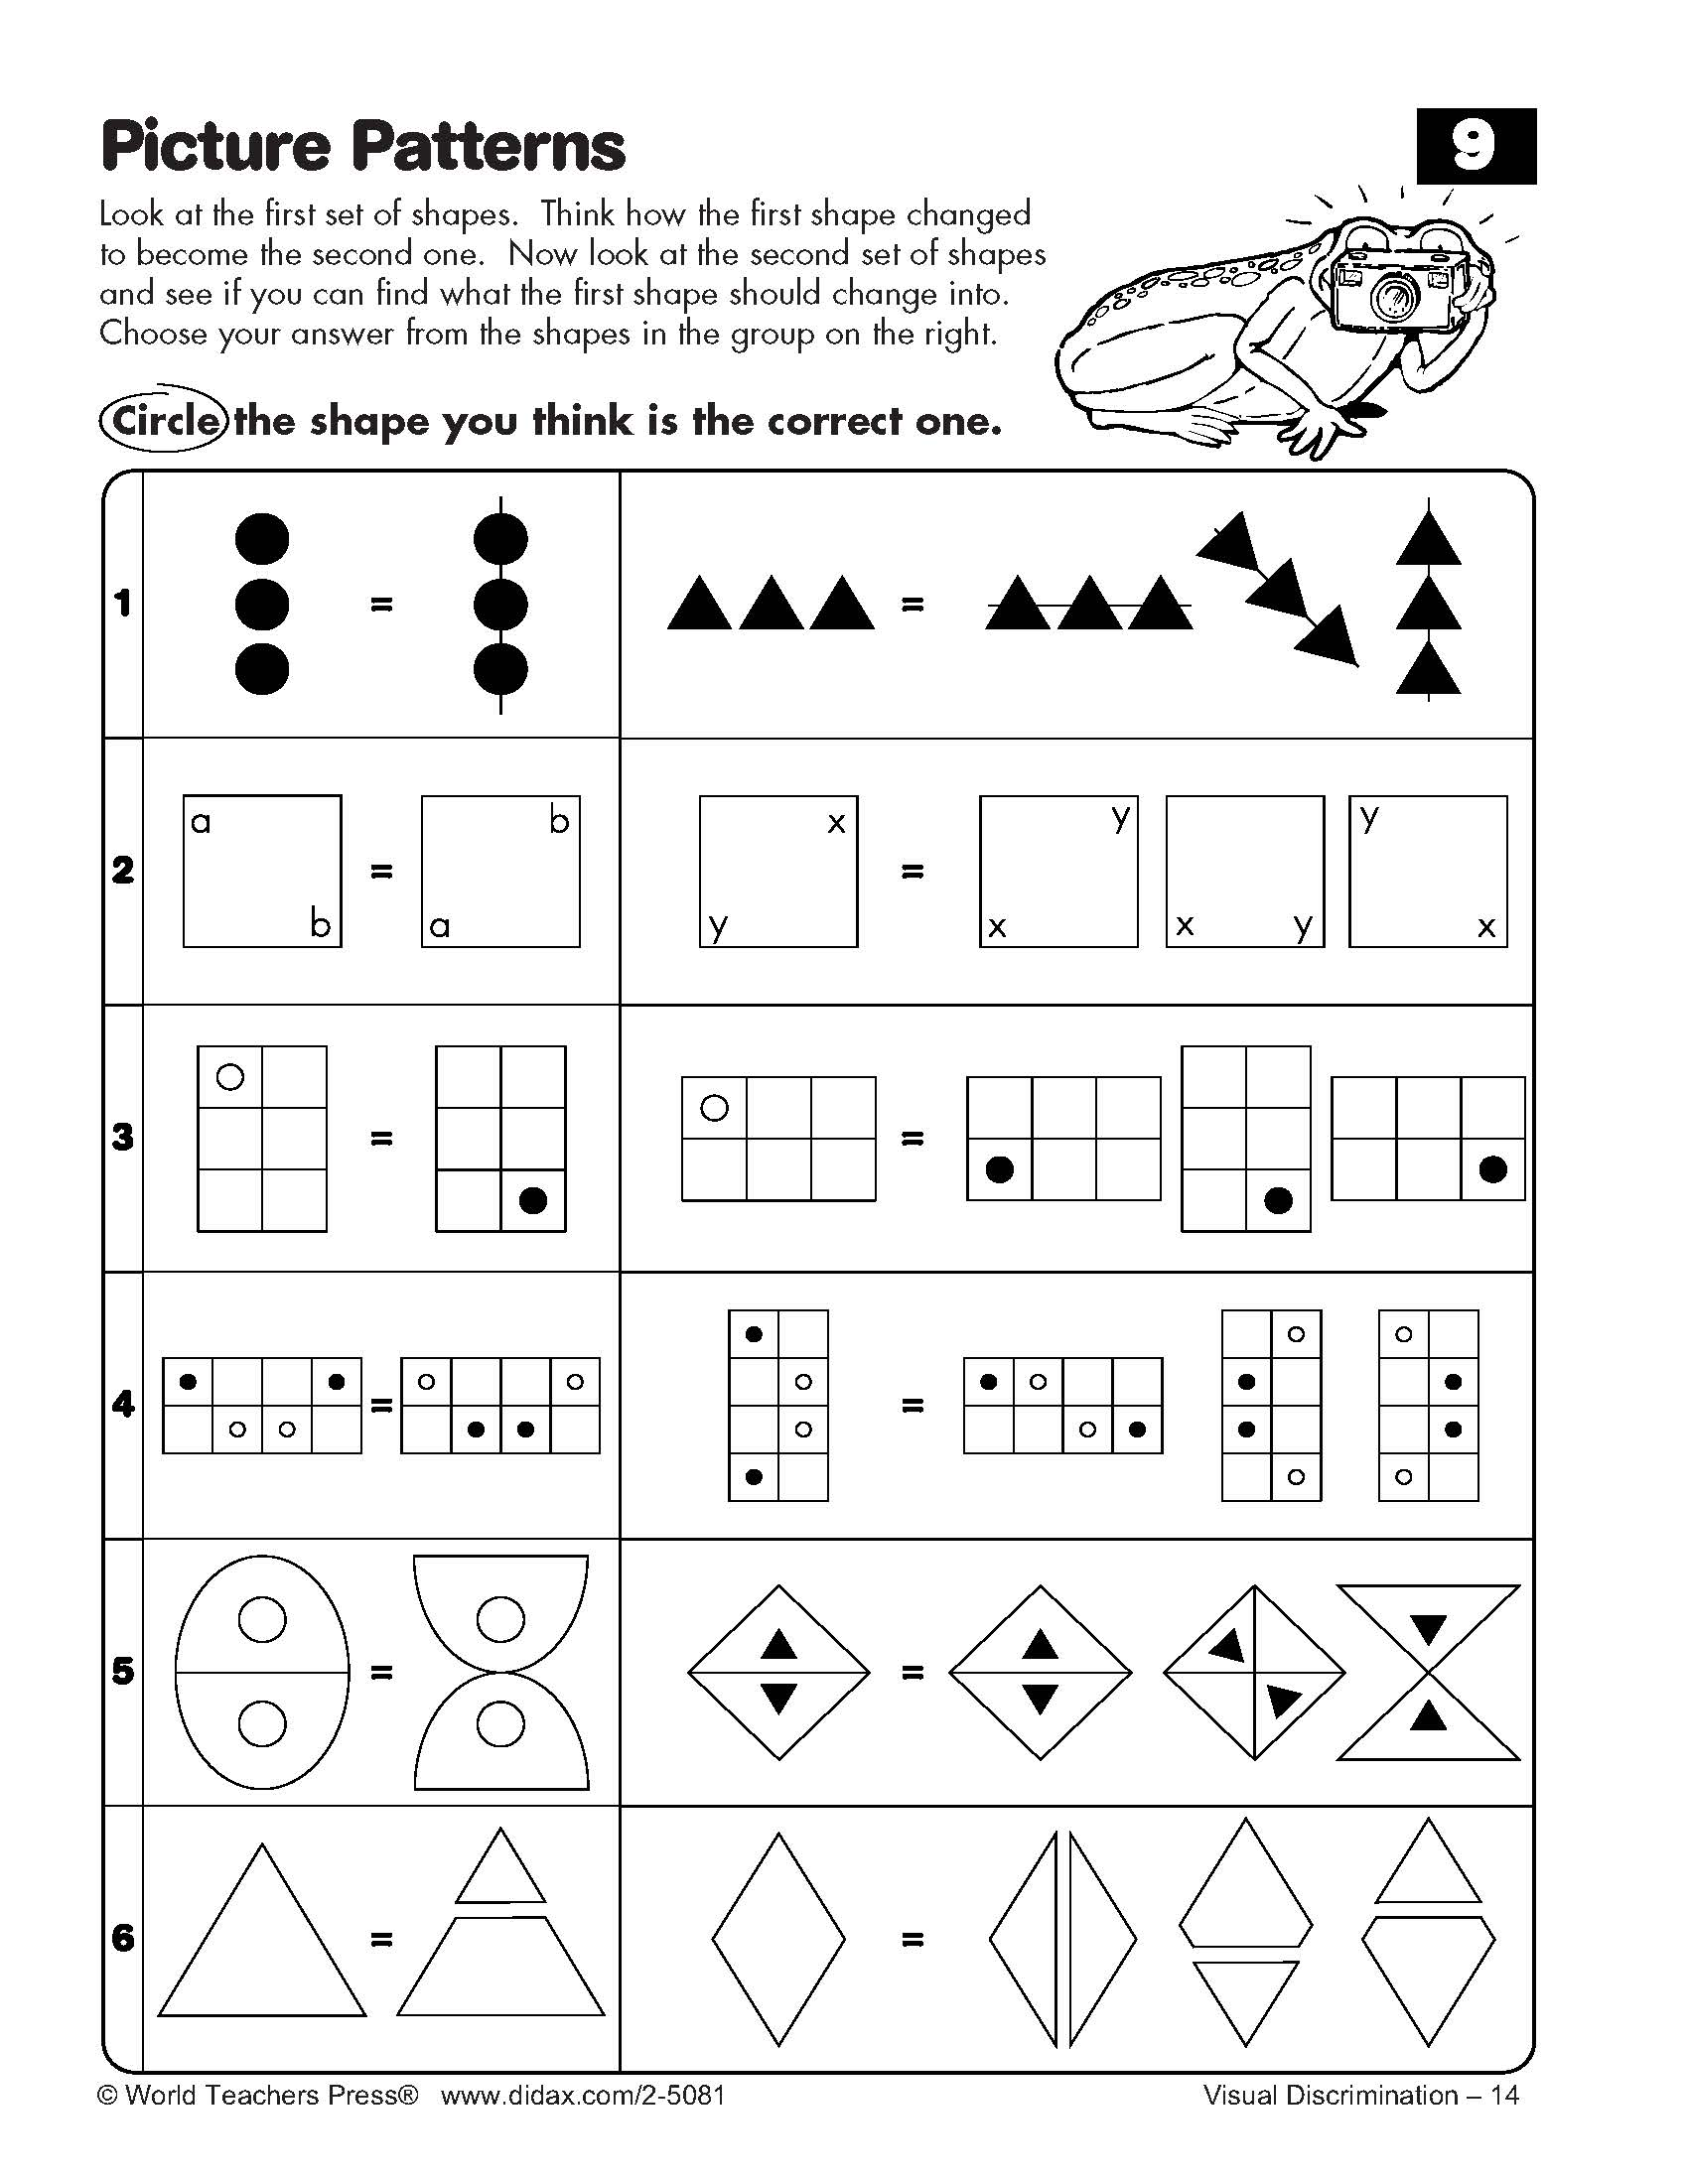 Worksheets Visual Discrimination Worksheets visual discrimination worksheet free worksheets library download spring preschool worksheets